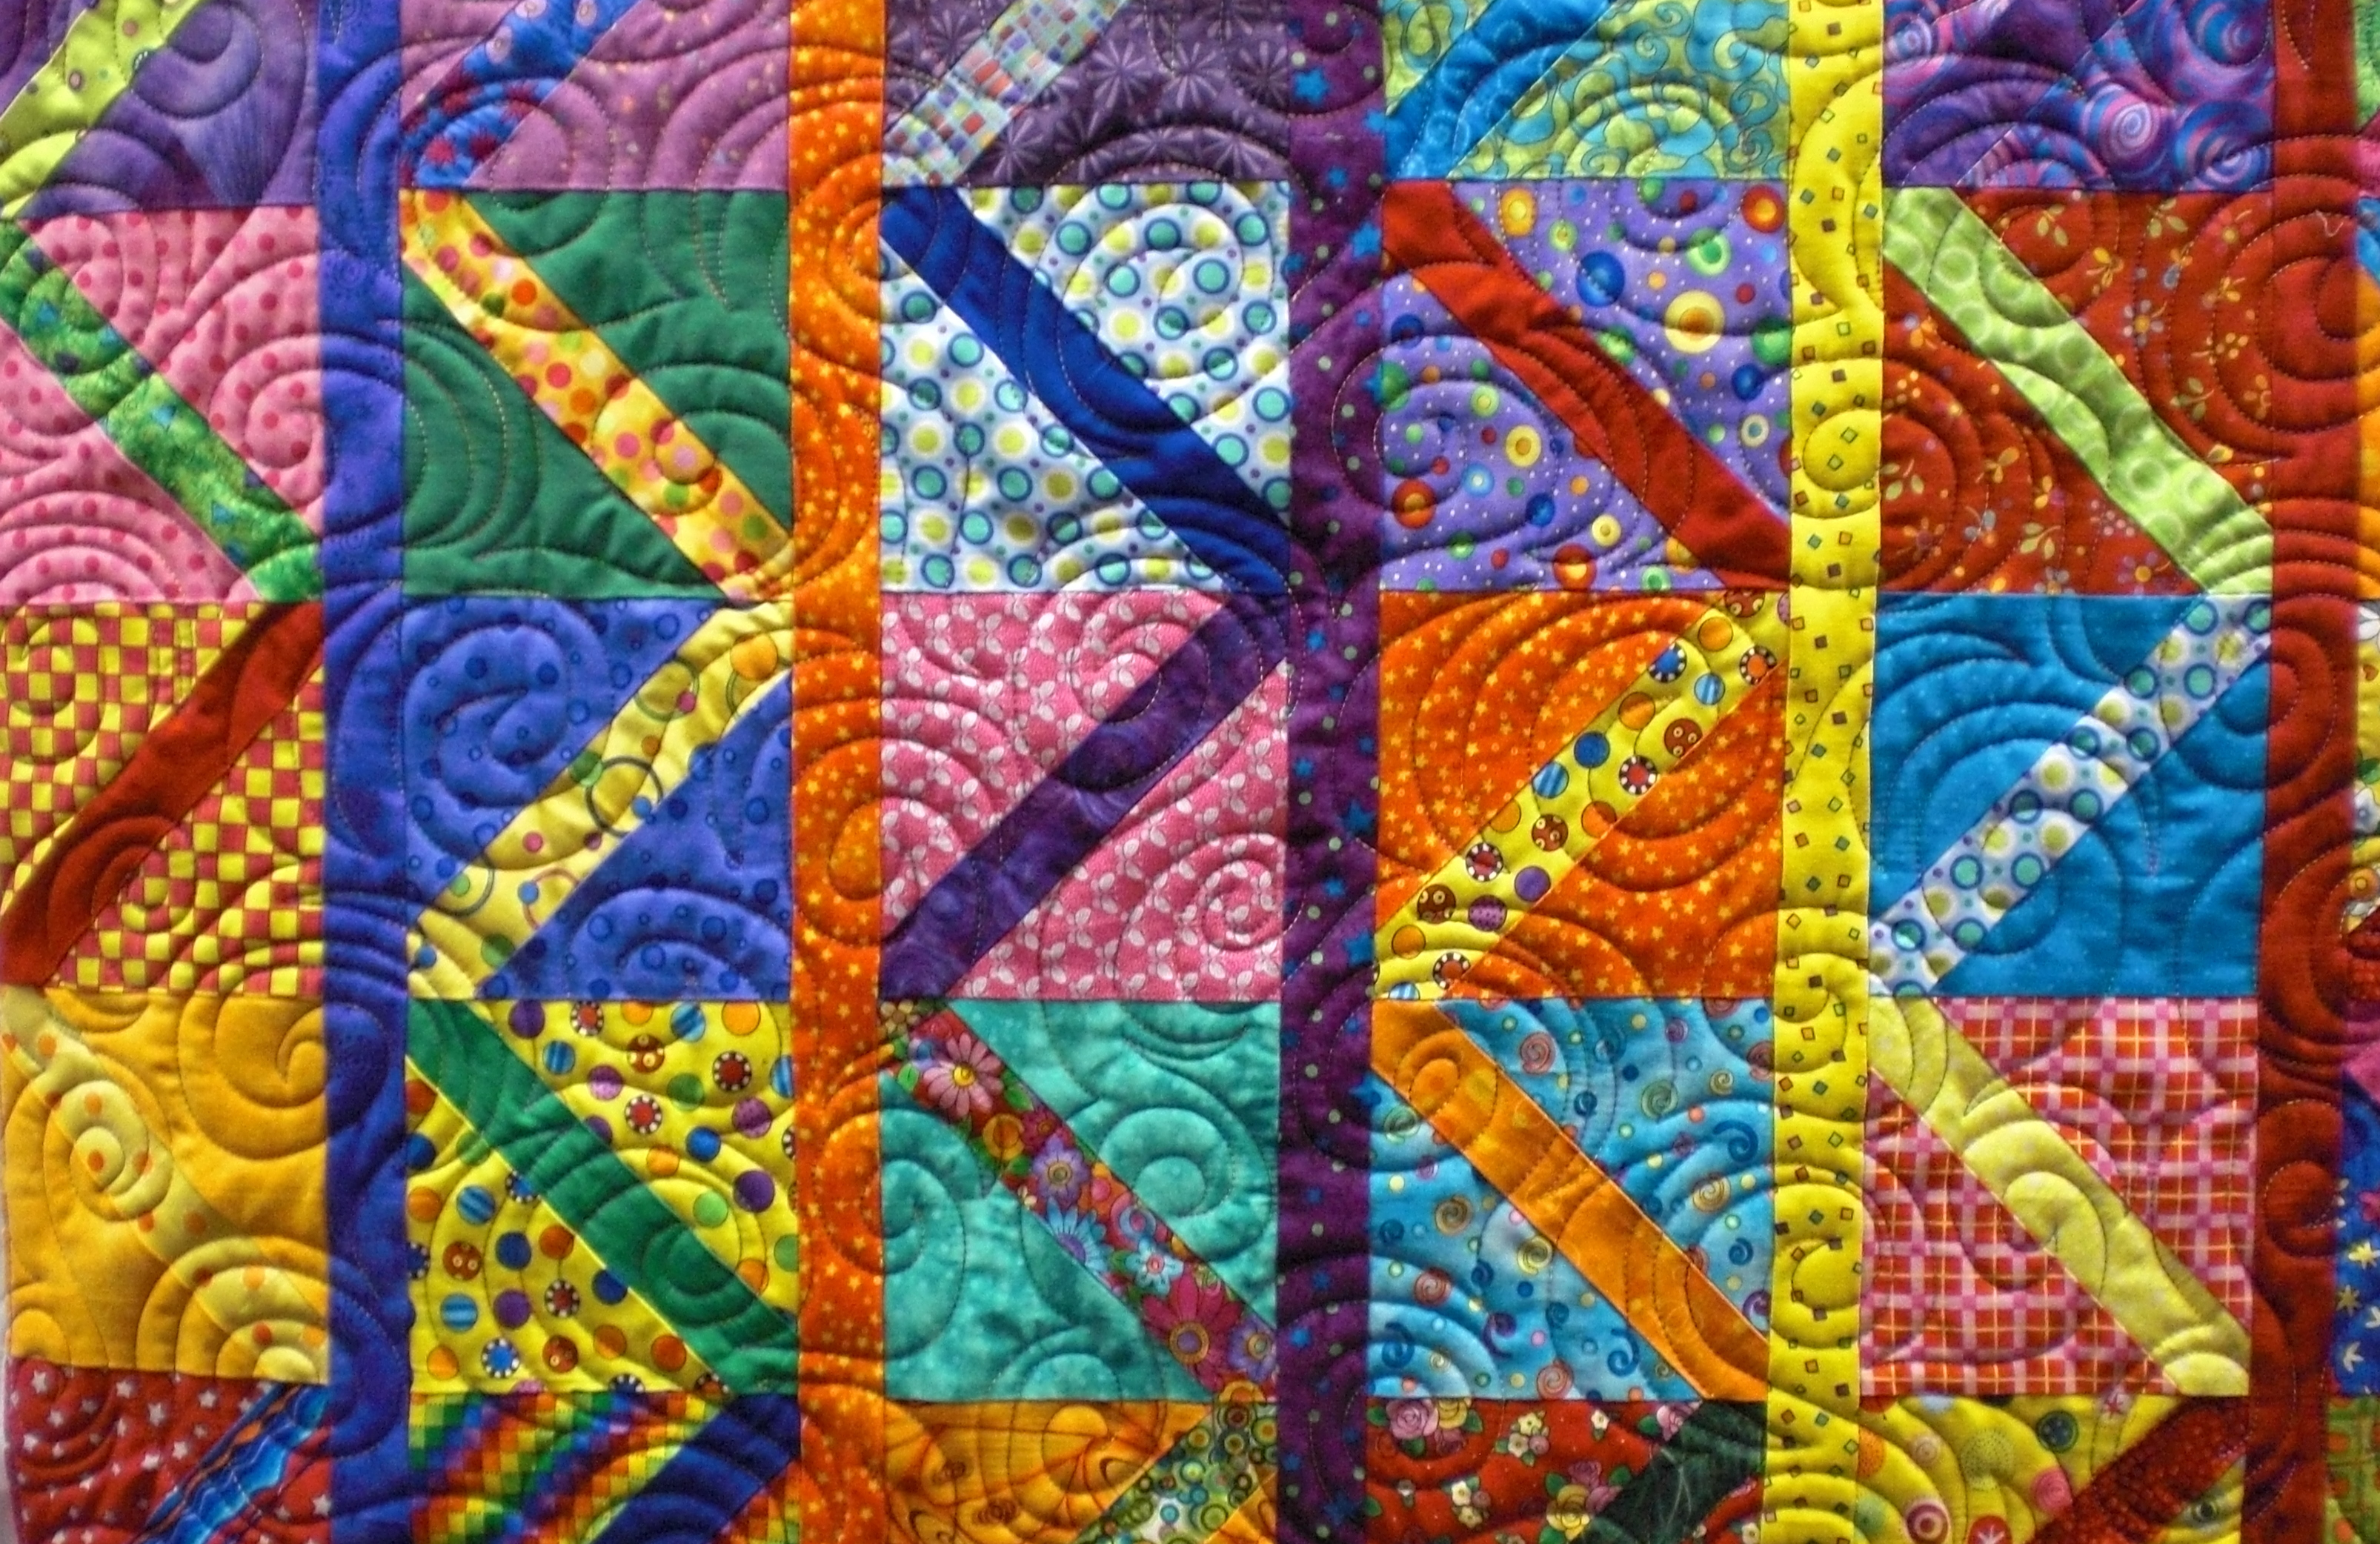 Pantograph Quilt Patterns Patterns Gallery